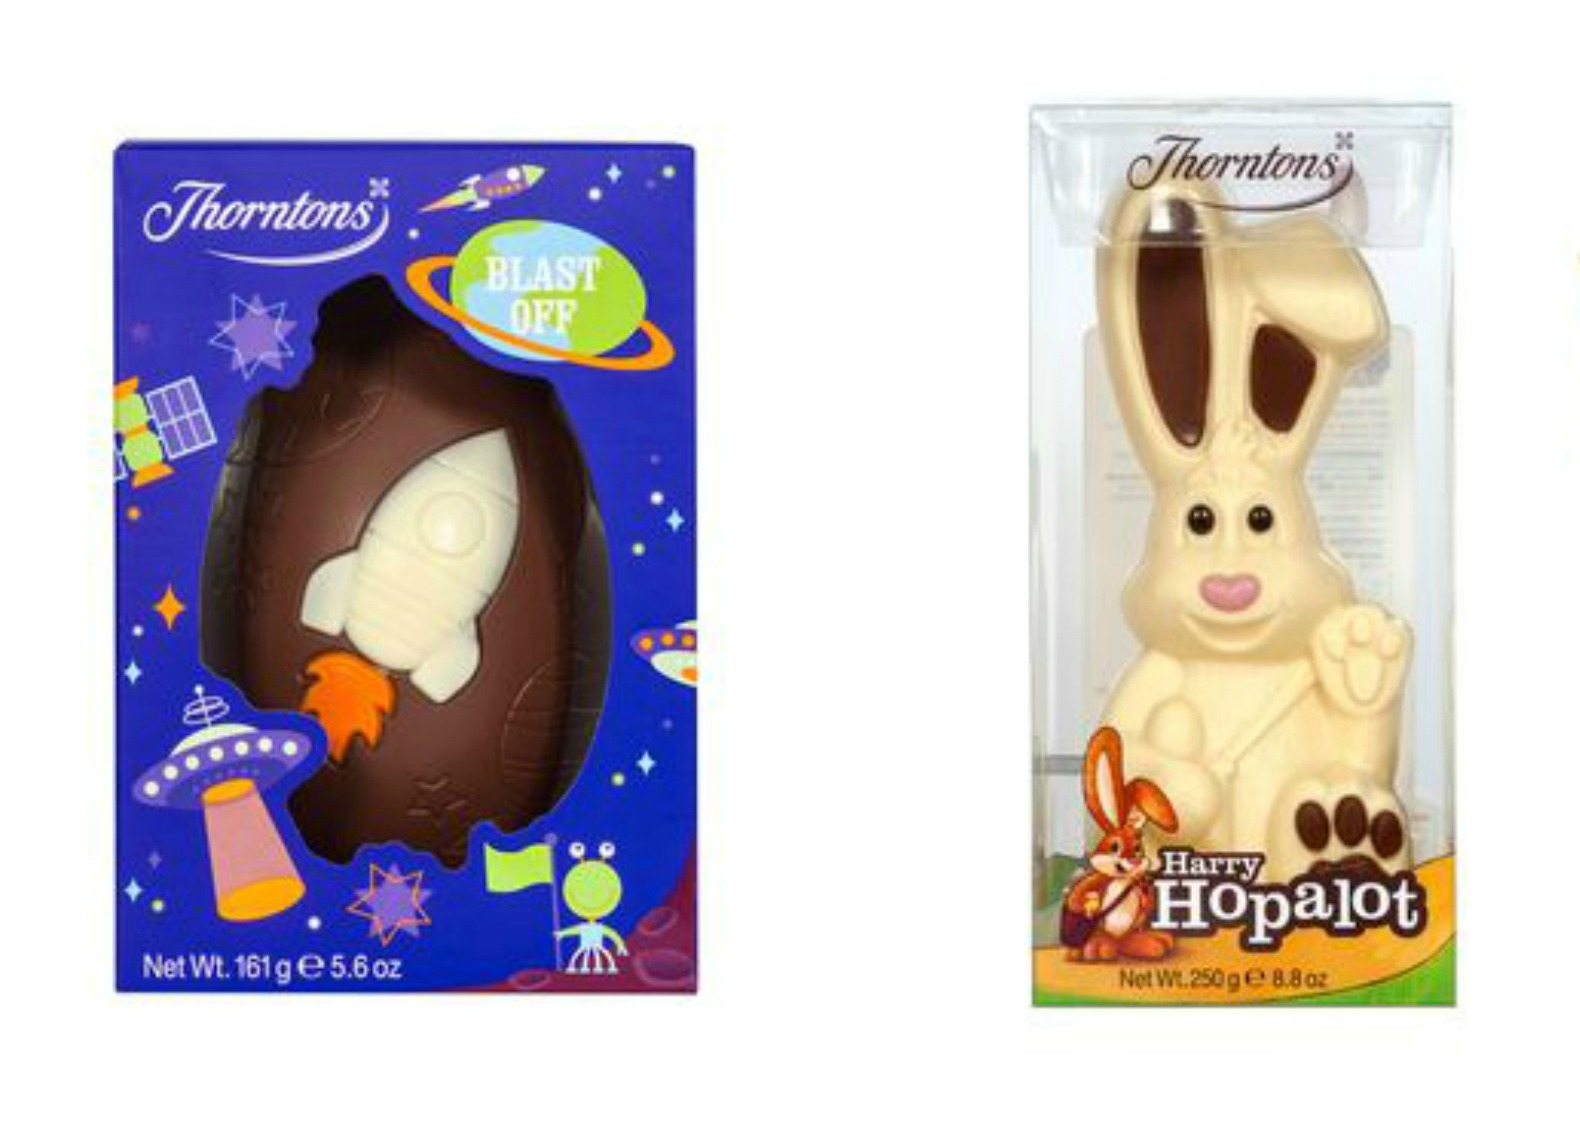 Thorntons Rocket Egg and Hopalot Rabbit